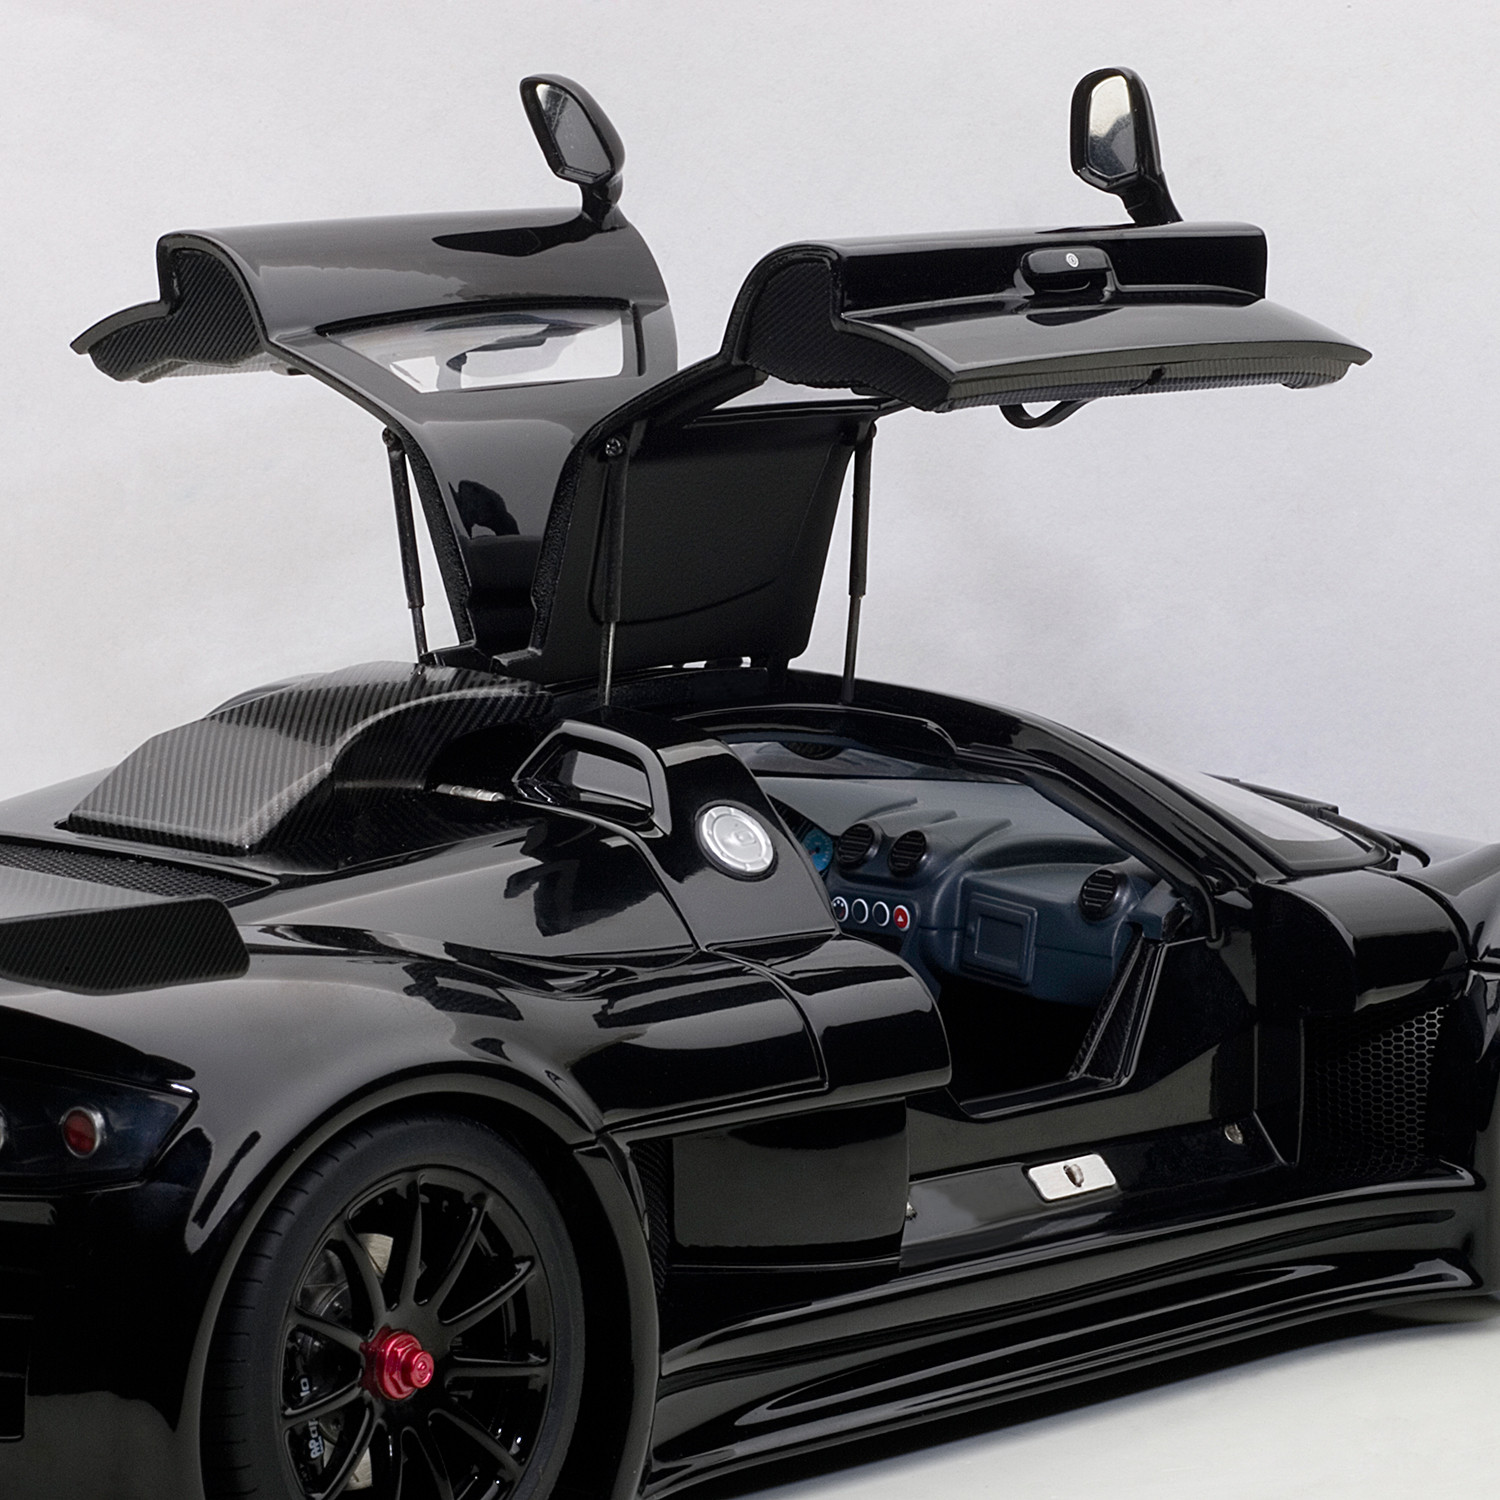 Gumpert Apollo // Glossy Black & Gumpert Apollo // Glossy Black - AutoArt - Touch of Modern